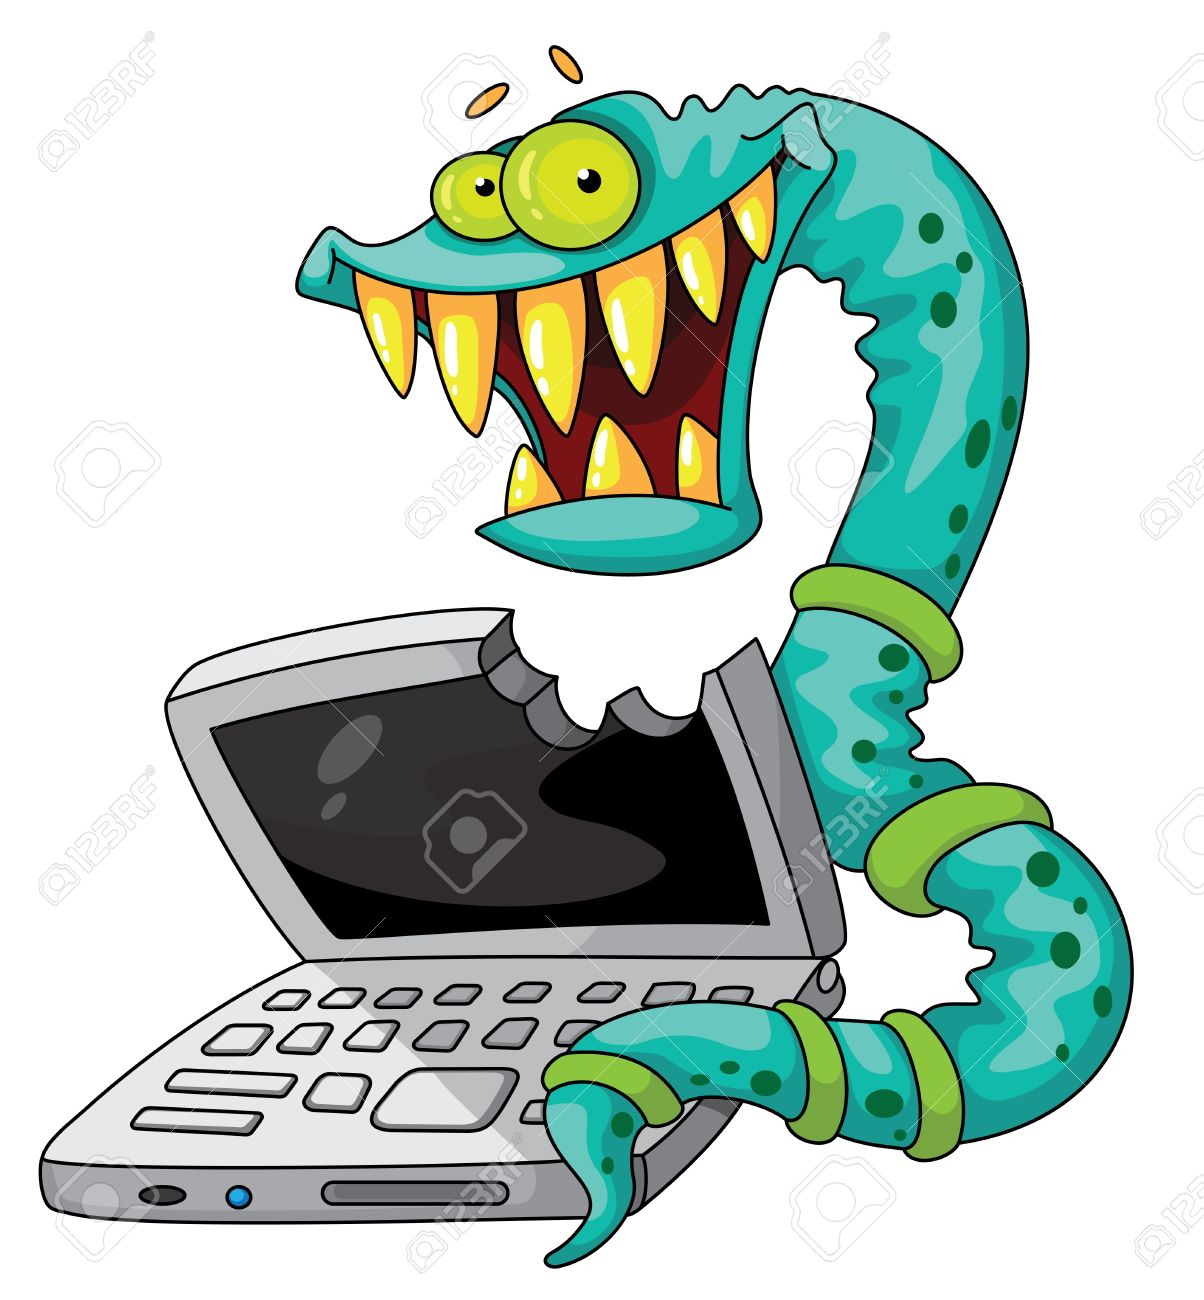 png download Free download best . Clipart computer virus